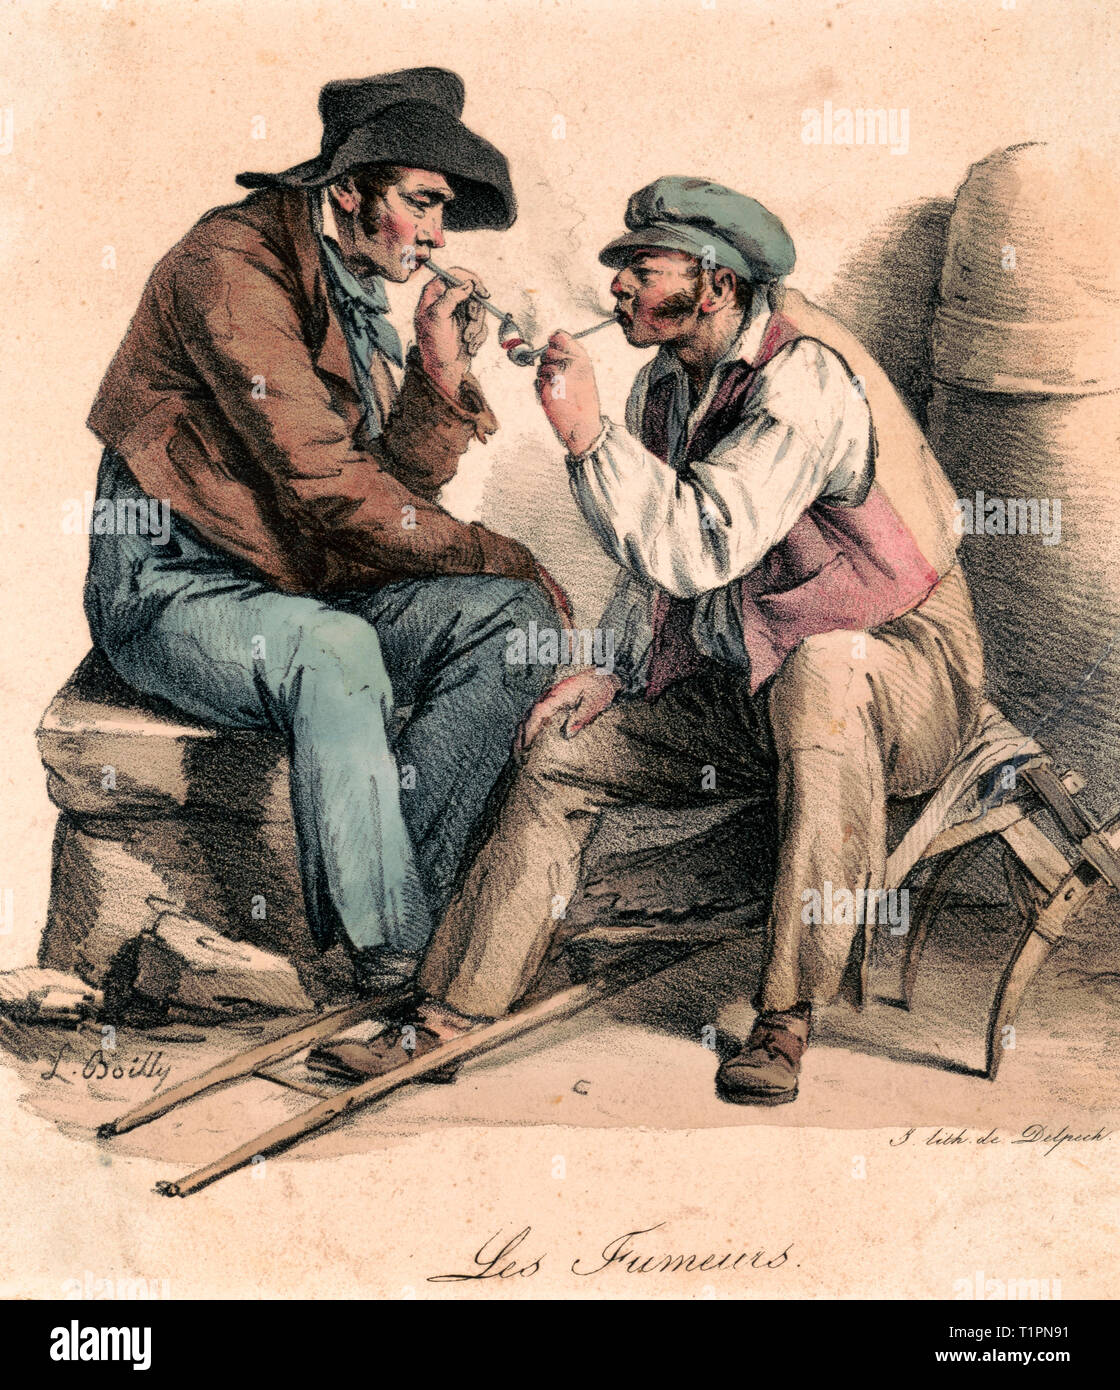 Les fumeurs - Print shows two men, possibly porters, exchanging a light from one another's pipes; one man is seated on rocks or bundles and the other is seated on the frame for carrying bundles on his back. Circa 1825 - Stock Image